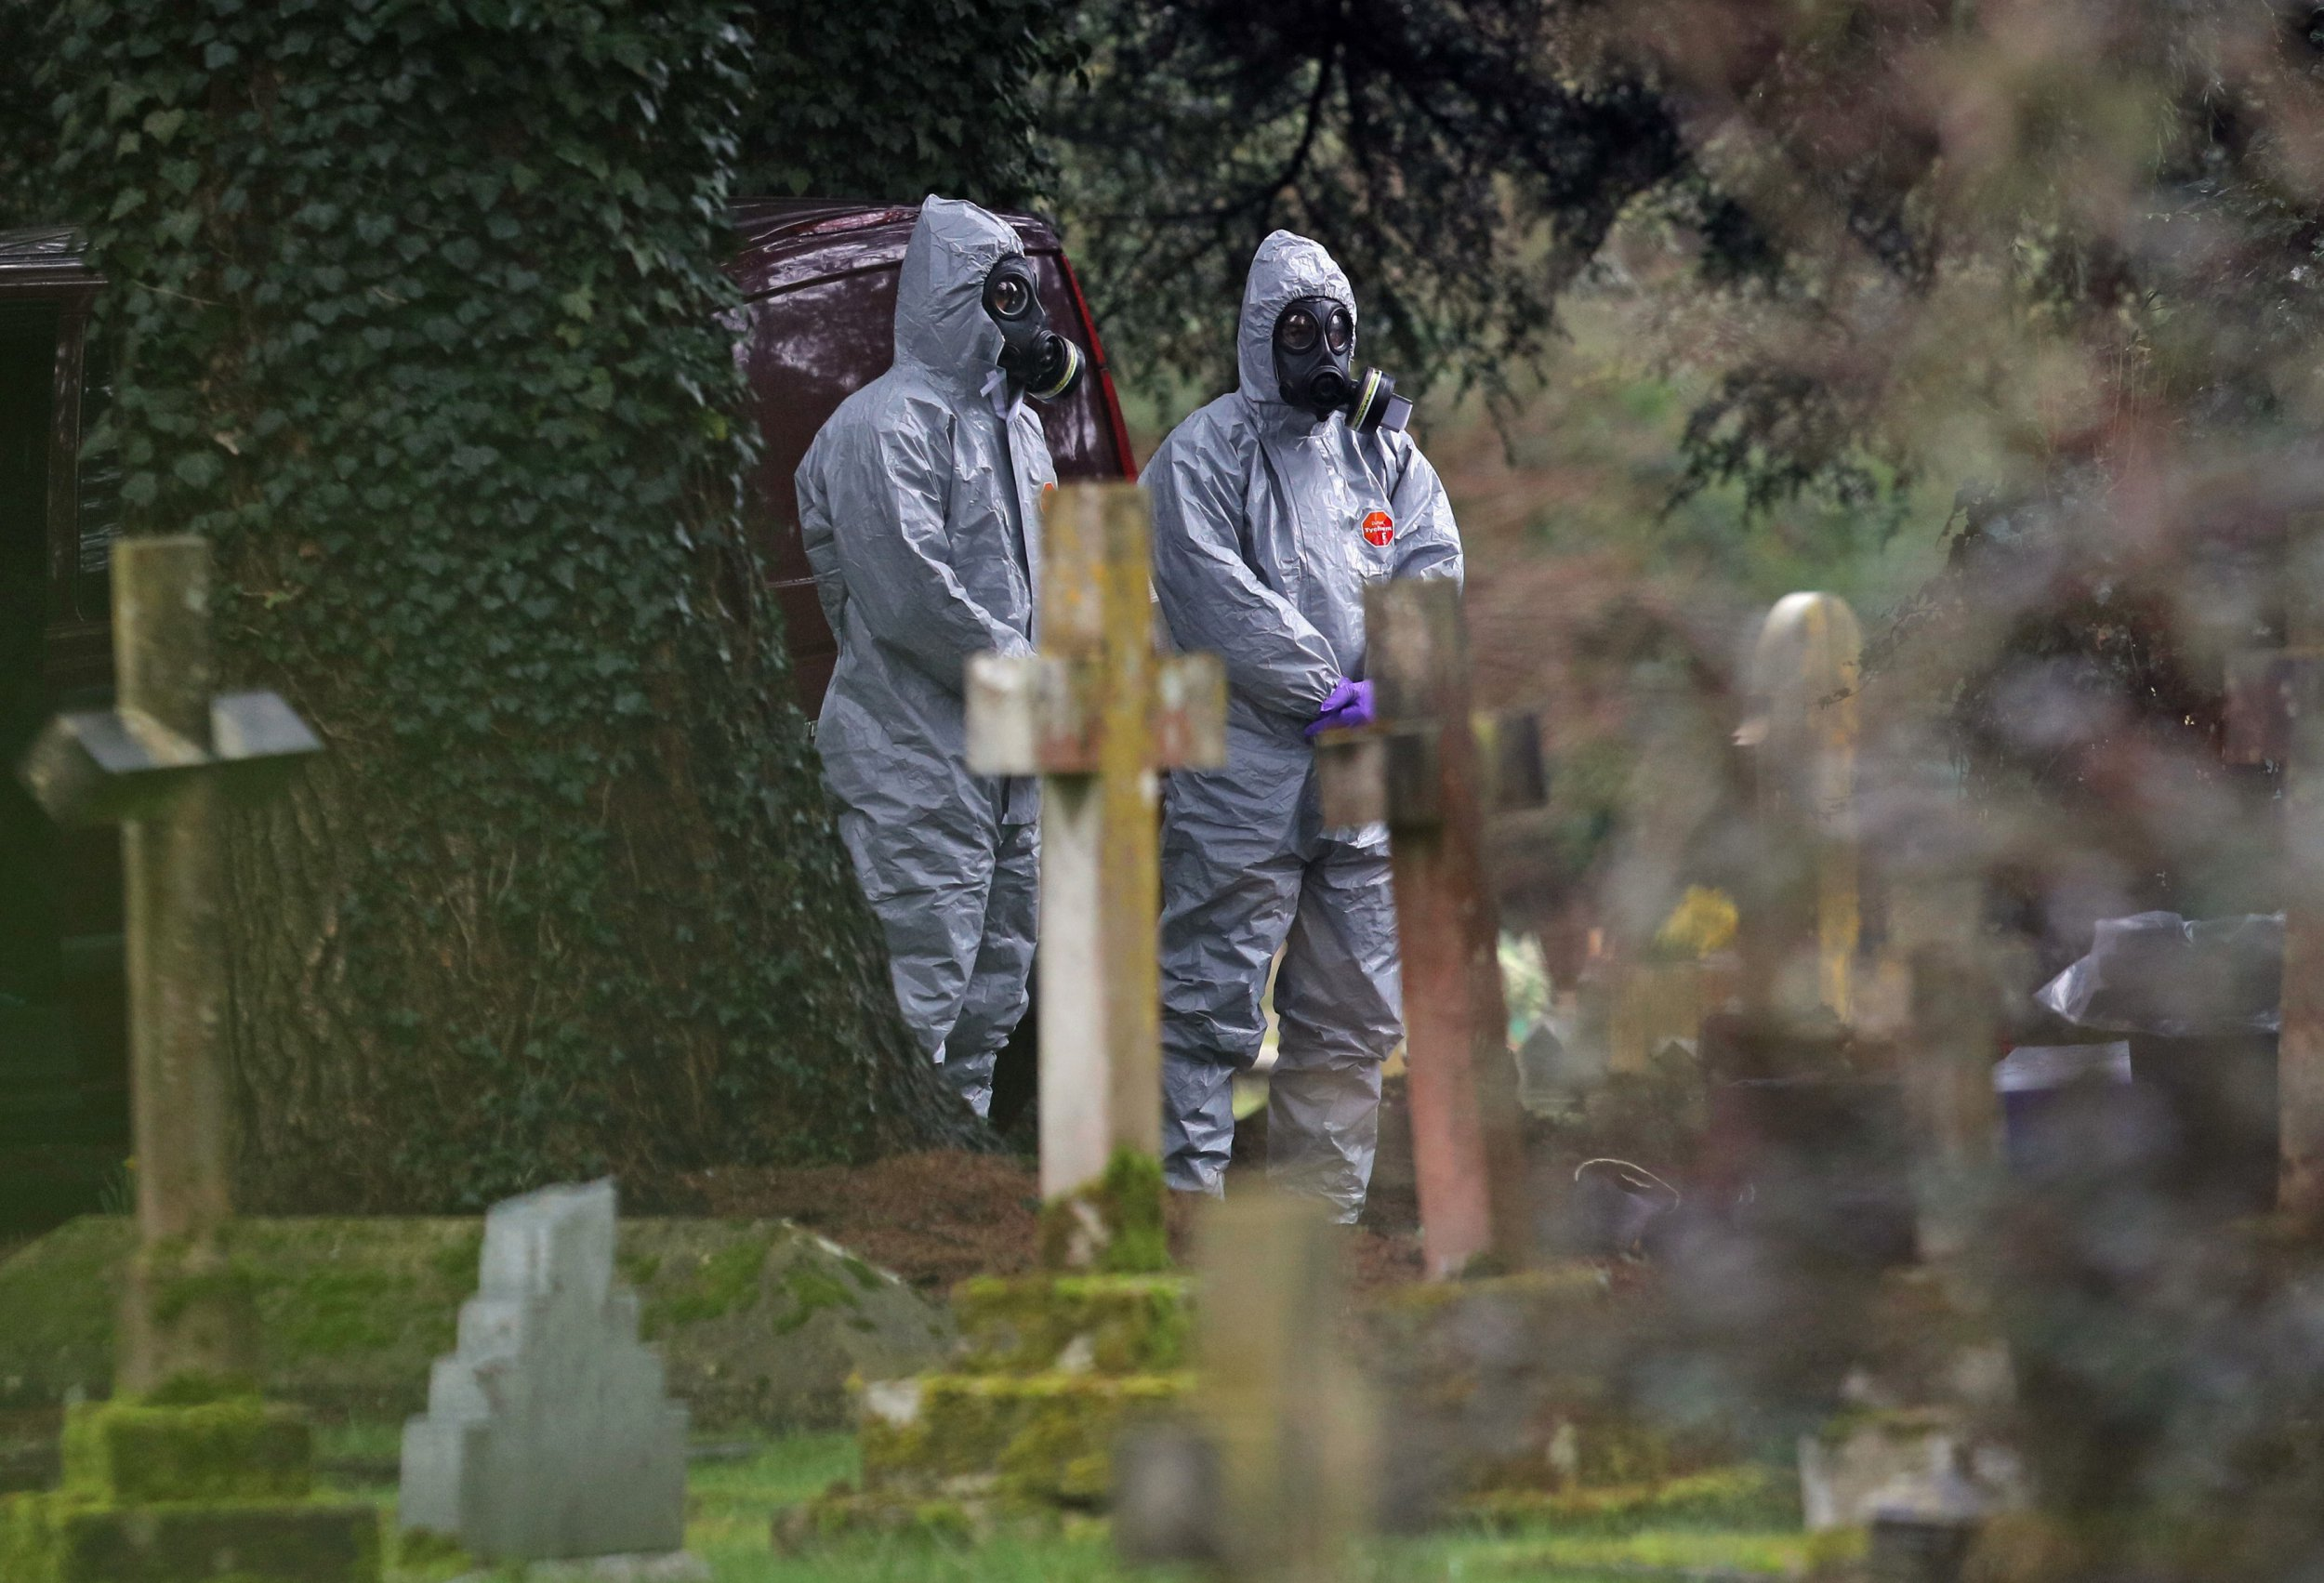 REVIEW OF THE YEAR PICS 2018 File photo dated 10/03/18 of forensic officers in gas masks at the London Road cemetery in Salisbury, Wiltshire, as investigations continued at the cemetery where former Russian double agent Sergei Skripal's wife and son were laid to rest. PRESS ASSOCIATION Photo. Issue date: Sunday December 16, 2018. See PA story XMAS Year. Photo credit should read: Andrew Matthews/PA Wire